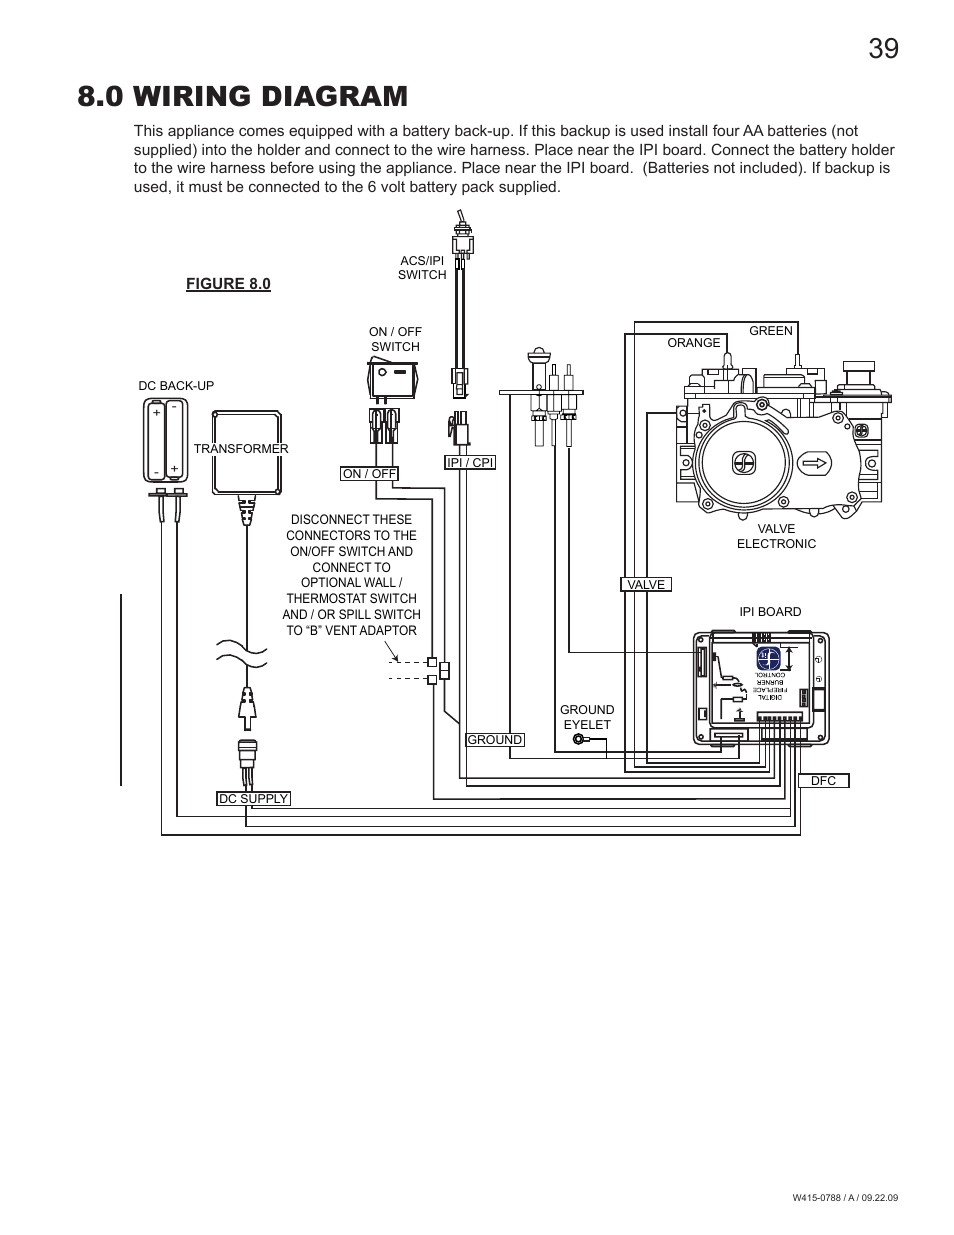 Fireplace Control Wiring - Wiring Diagram Bookmark on